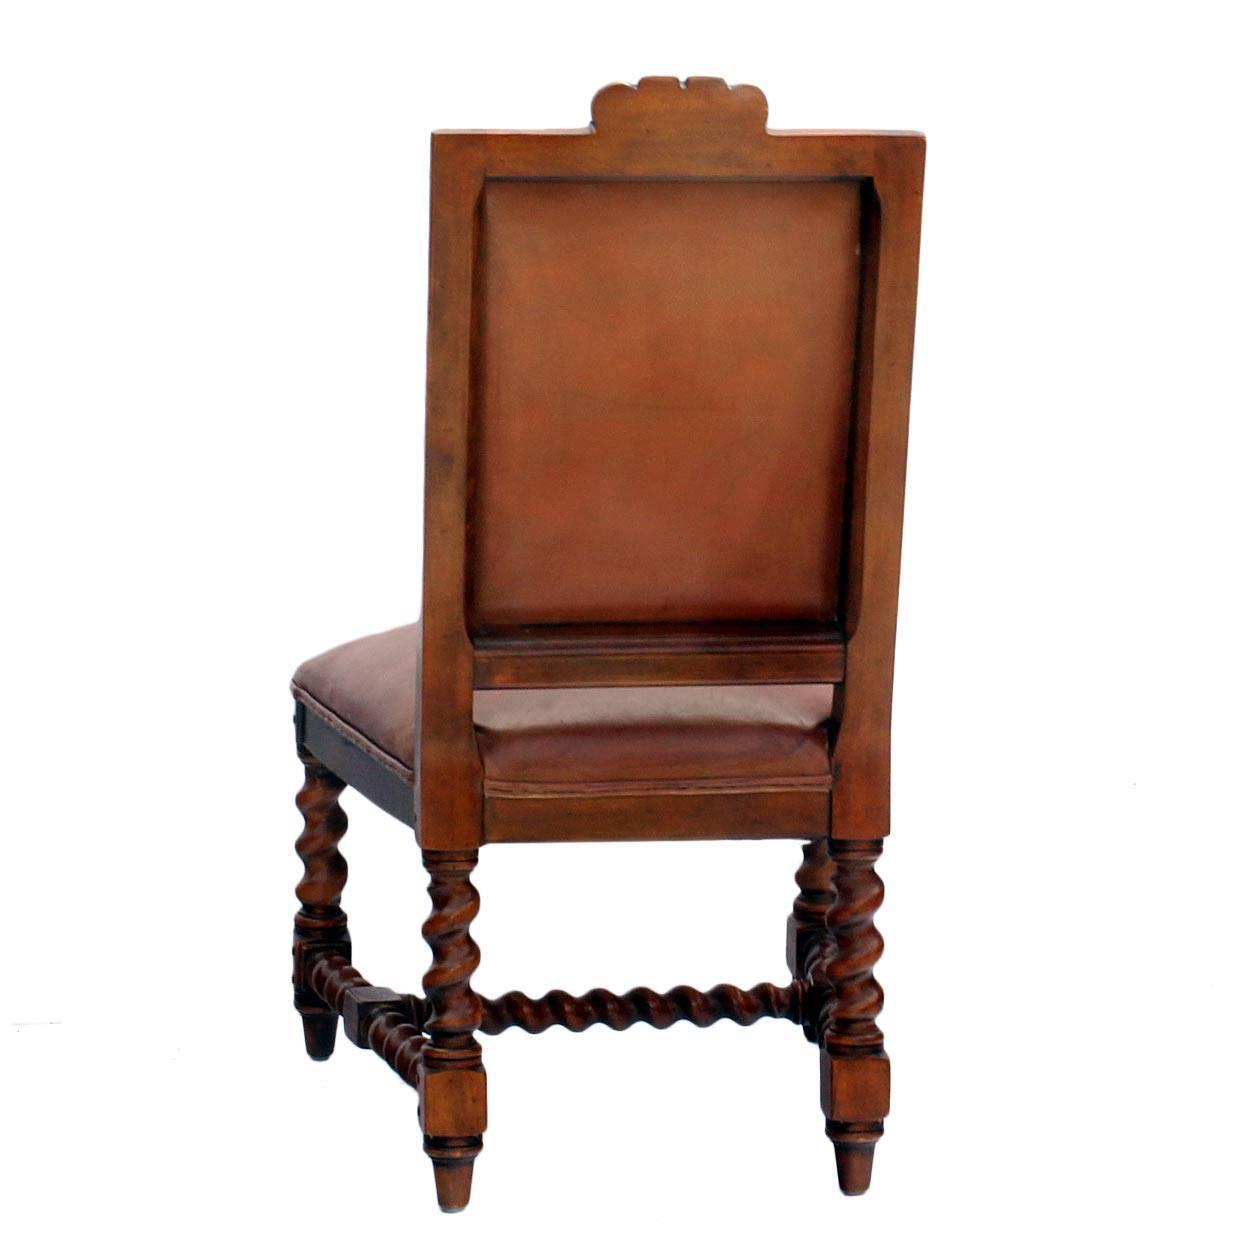 Ralph Lauren Furniture Sale: Four Dining Chairs By Ralph Lauren For Sale At 1stdibs